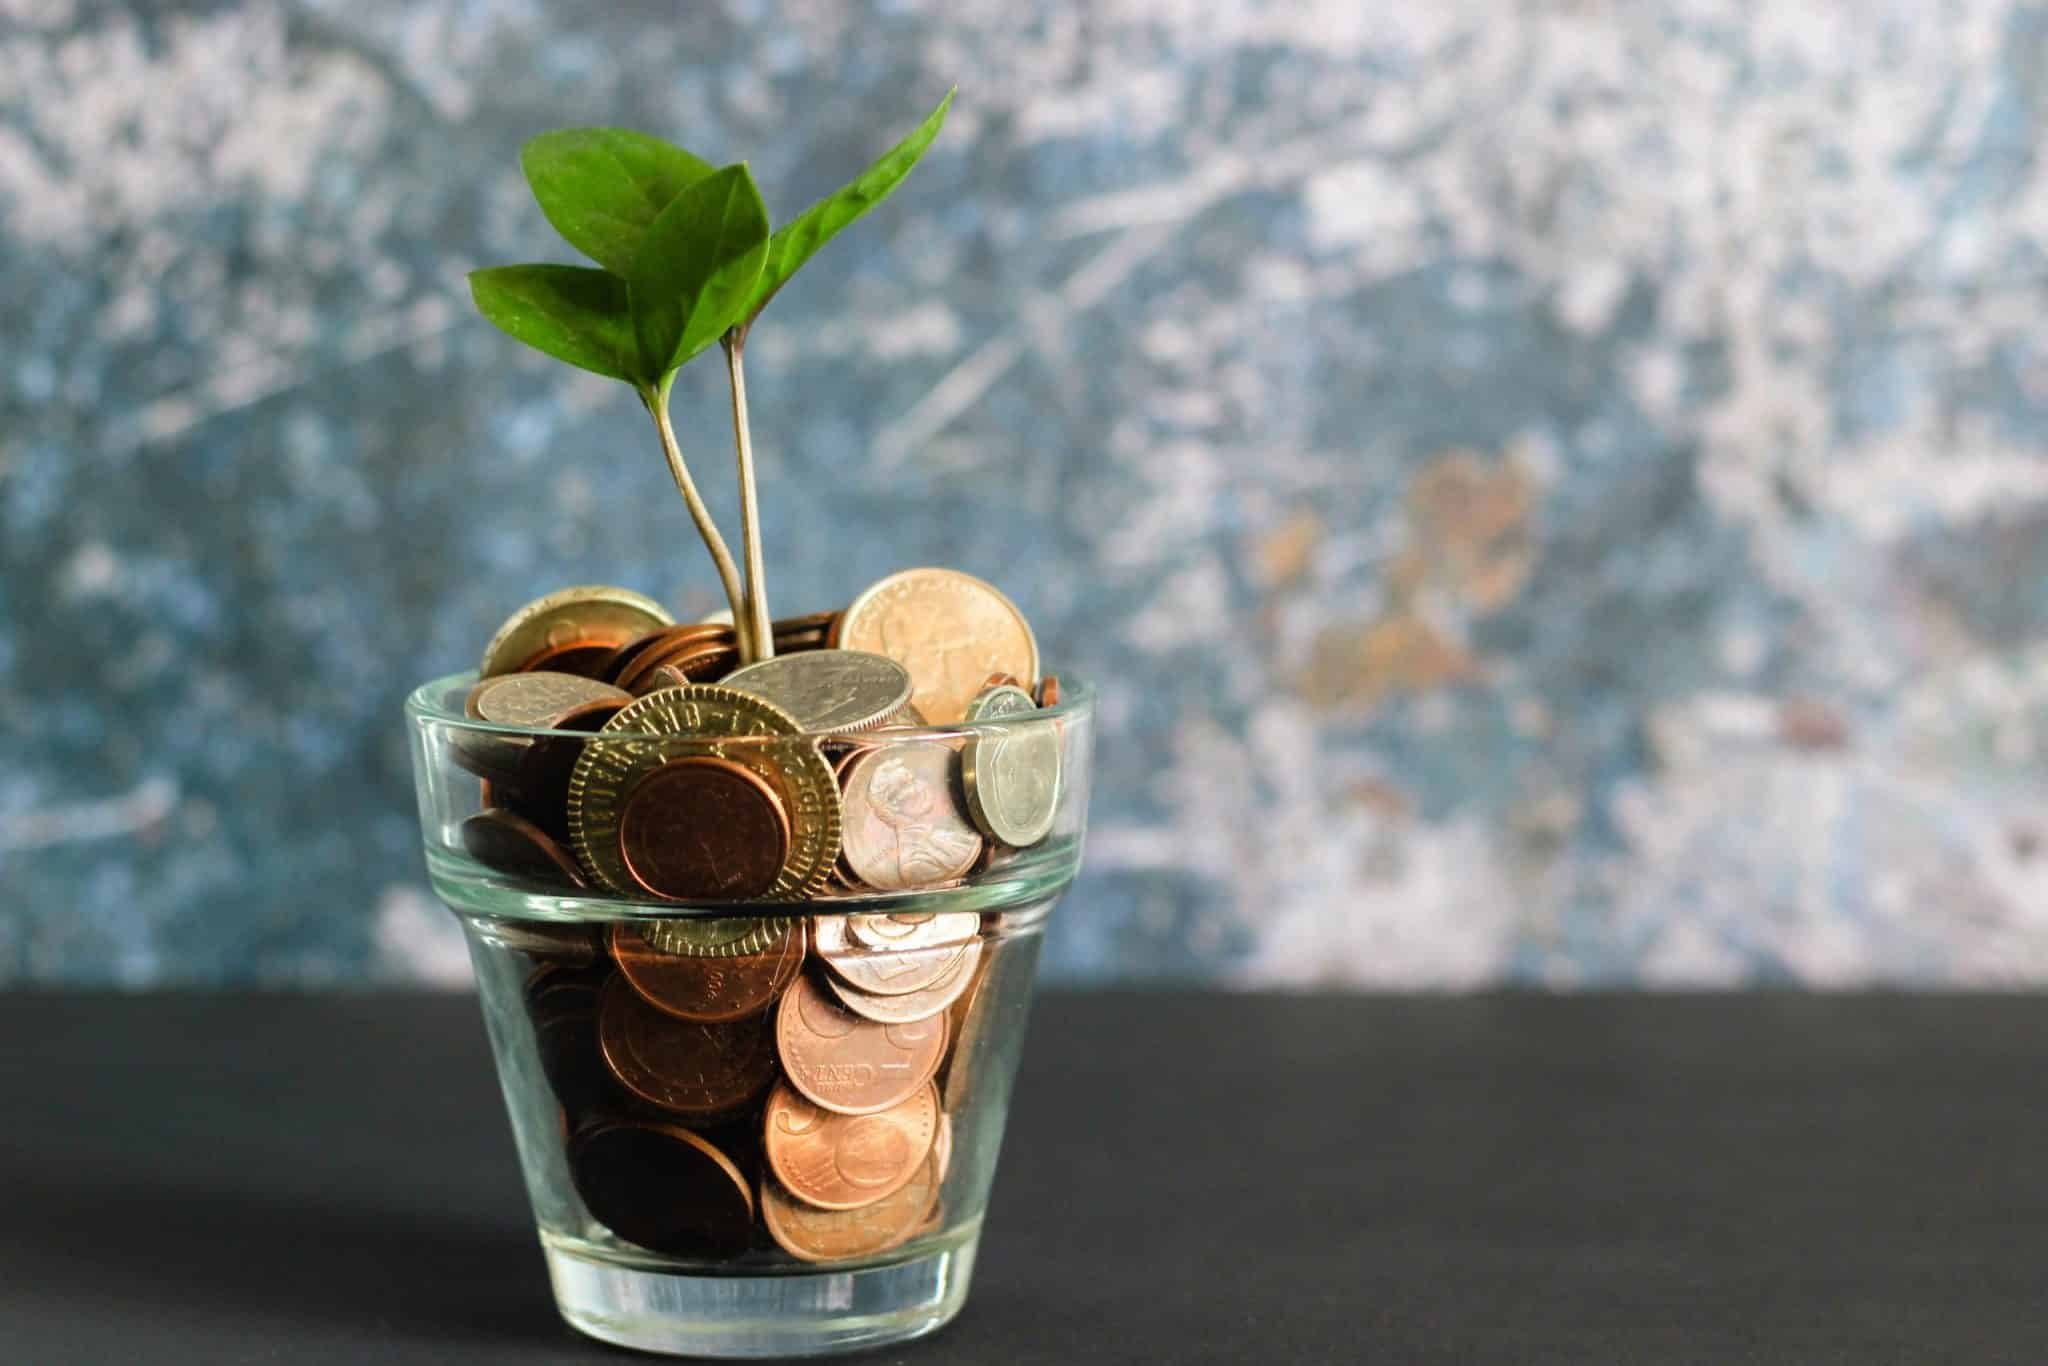 A glass filled with coins with a small plant growing out if it